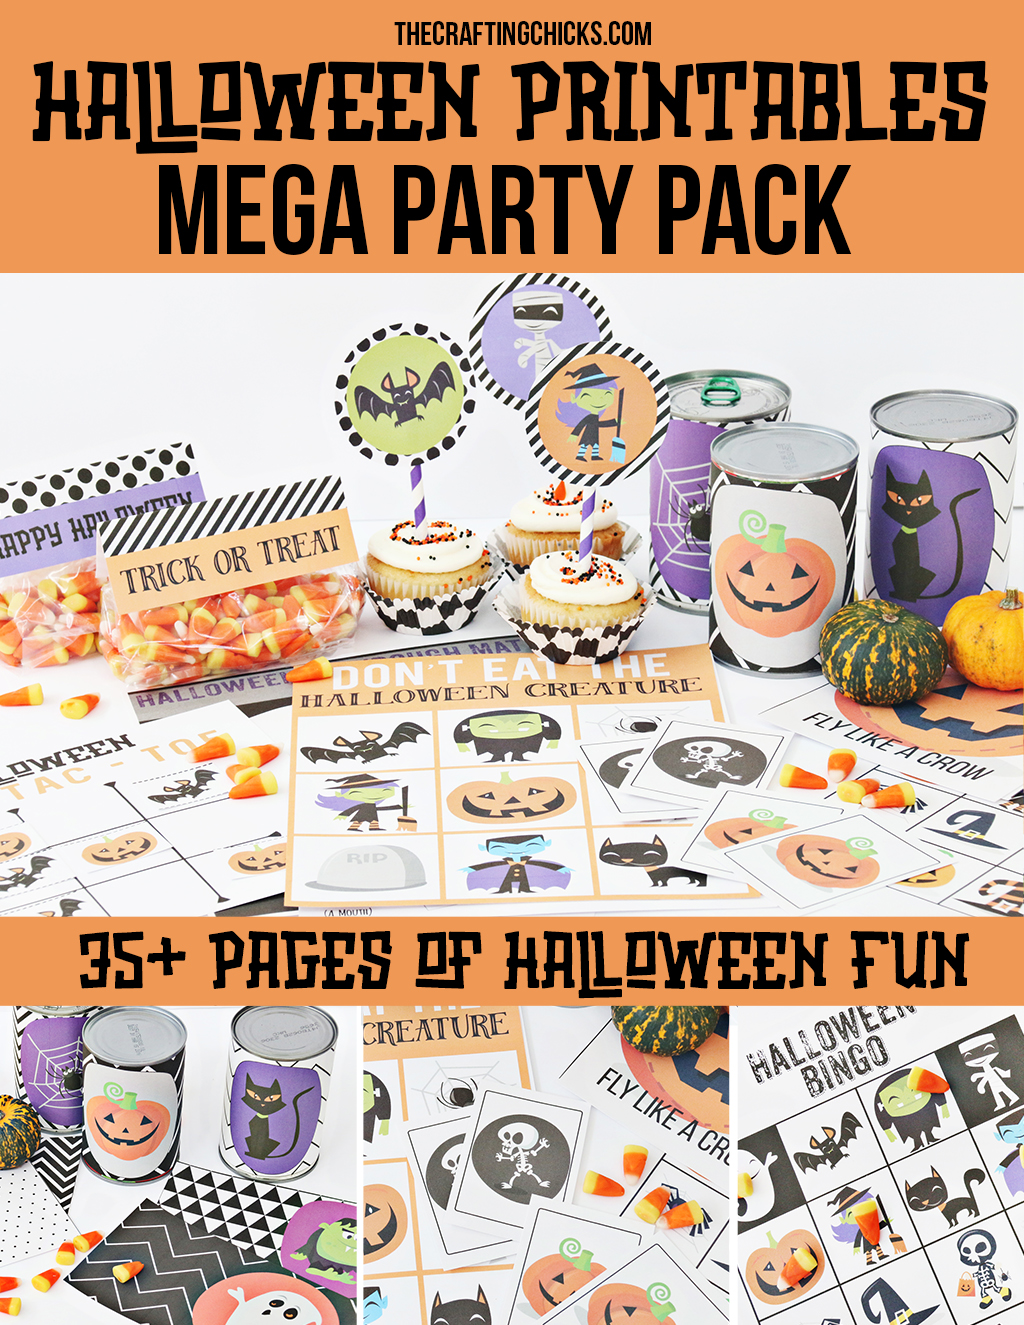 halloween printables mega party pack the crafting